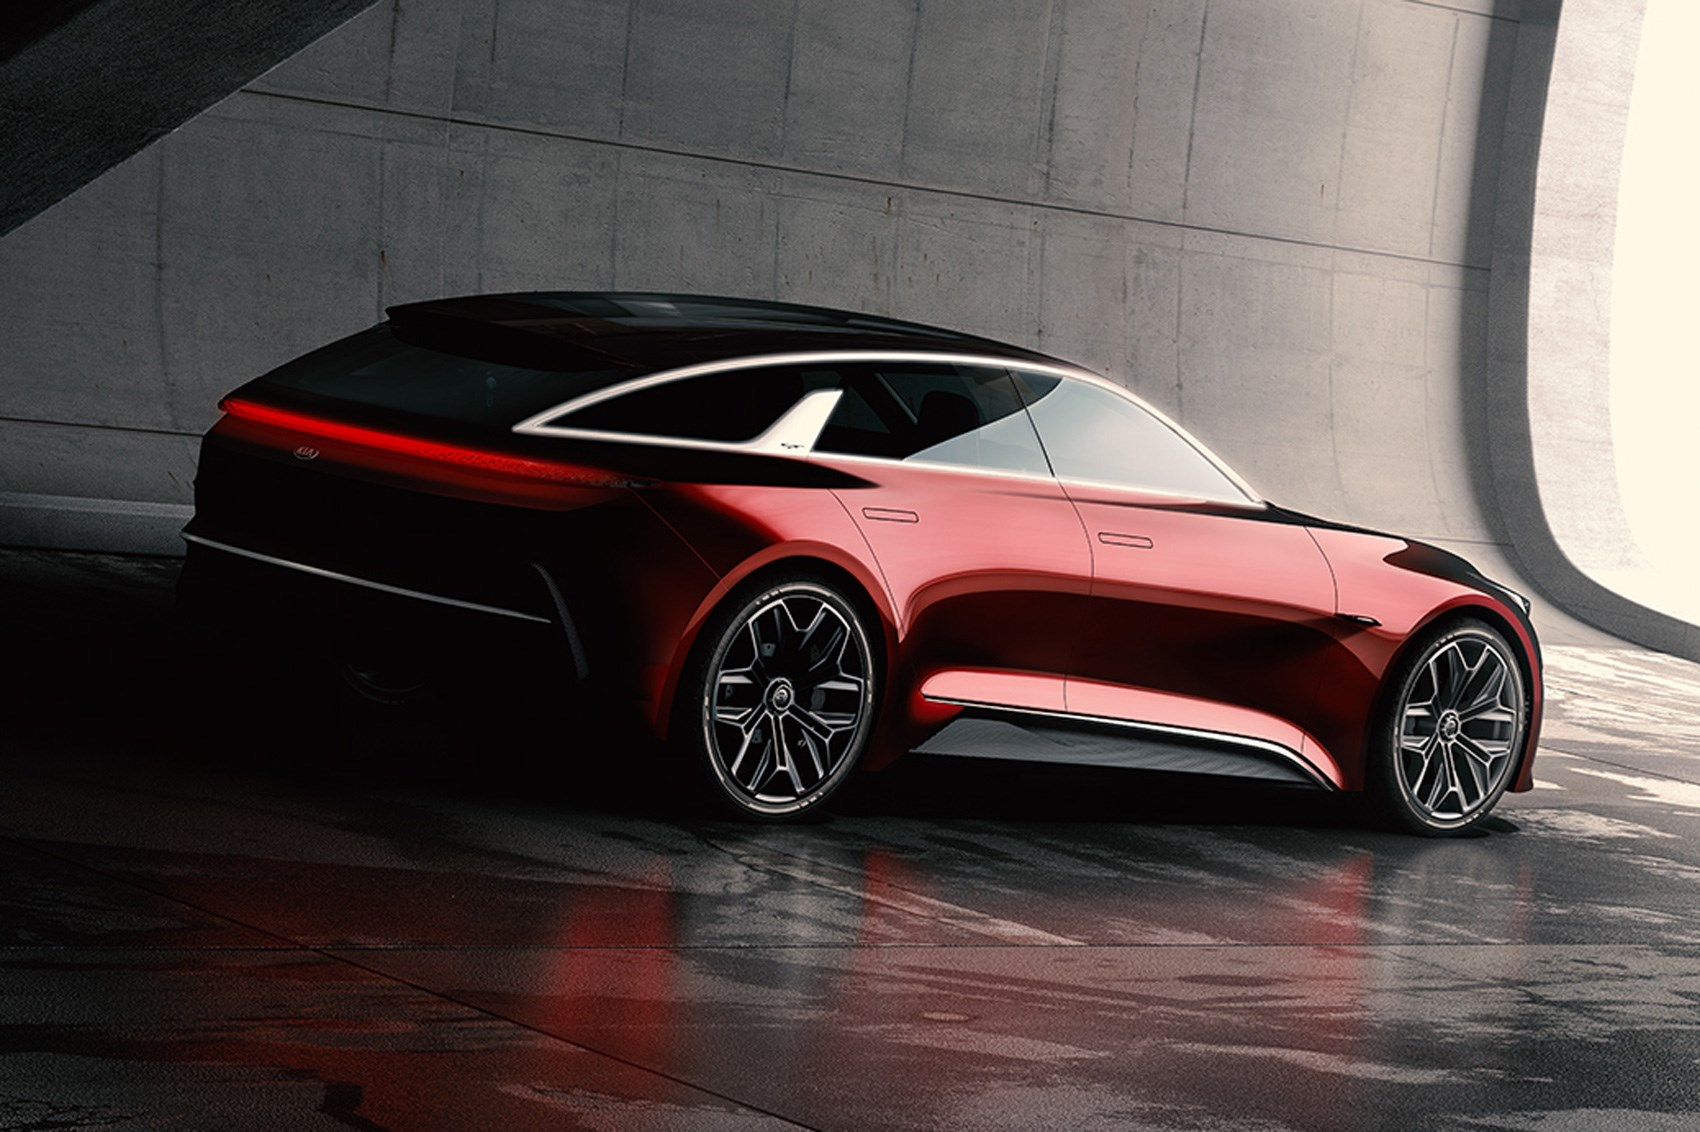 Kia teases next-generation cee'd with shooting brake concept